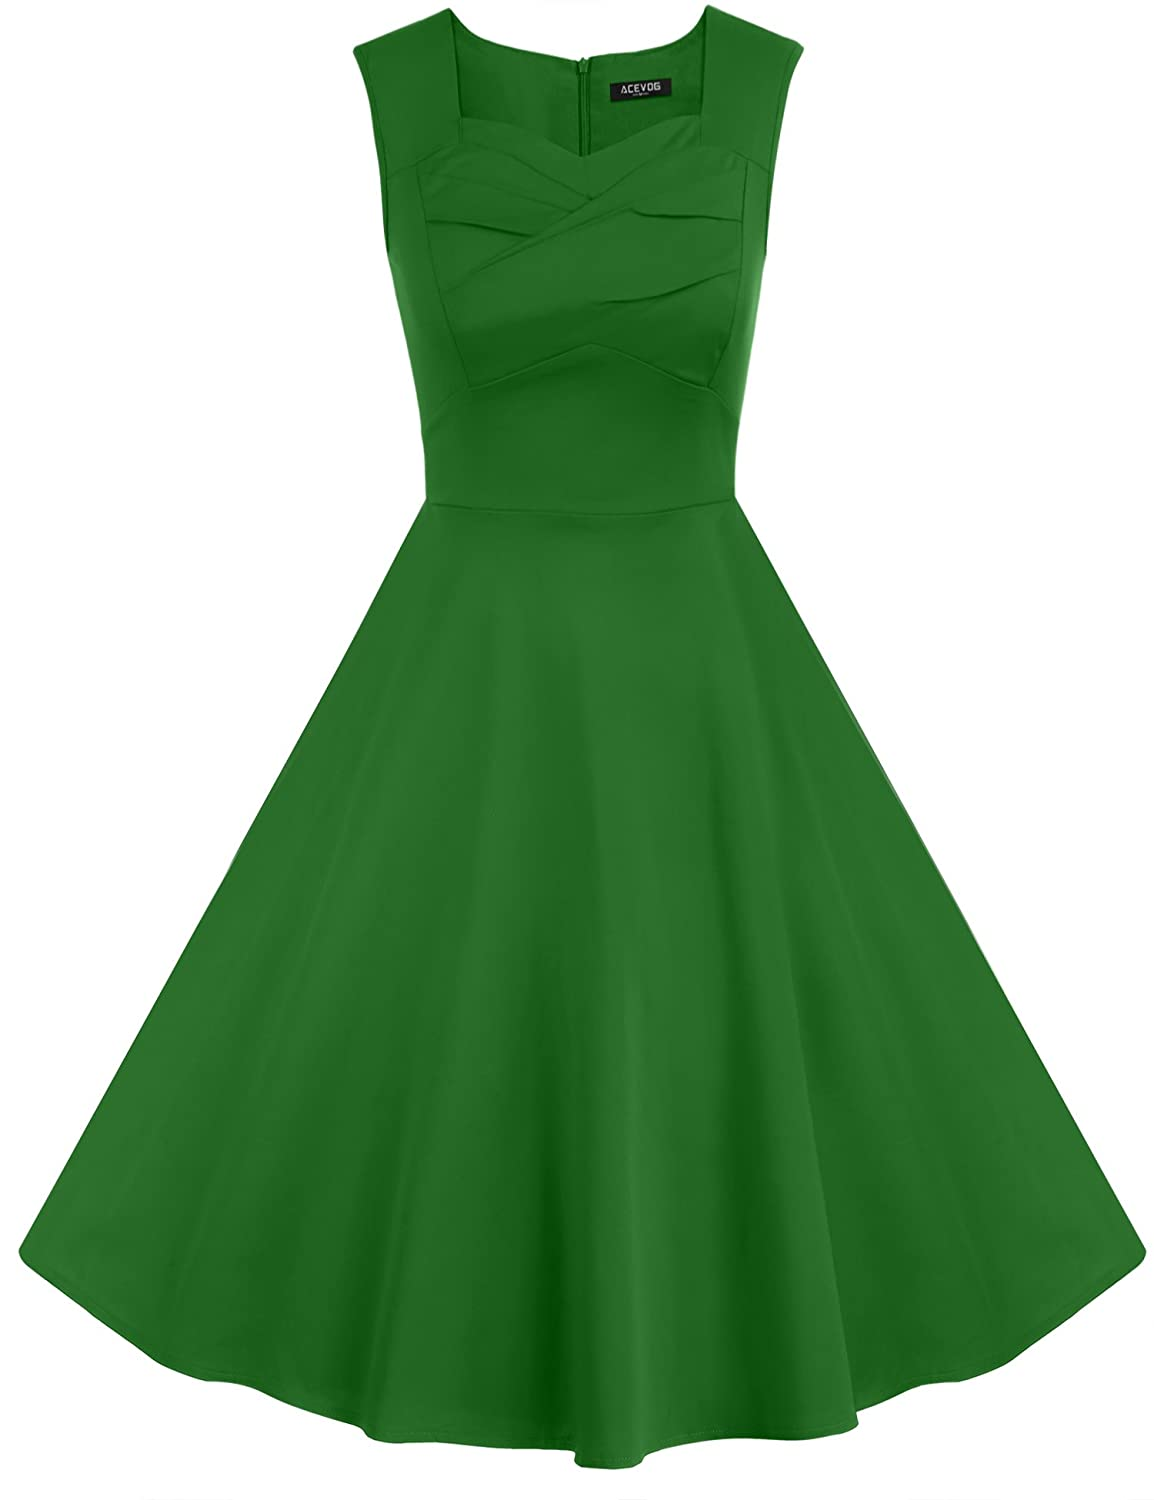 ACEVOG Women 1950s Vintage Retro Capshoulder Party Swing Dress